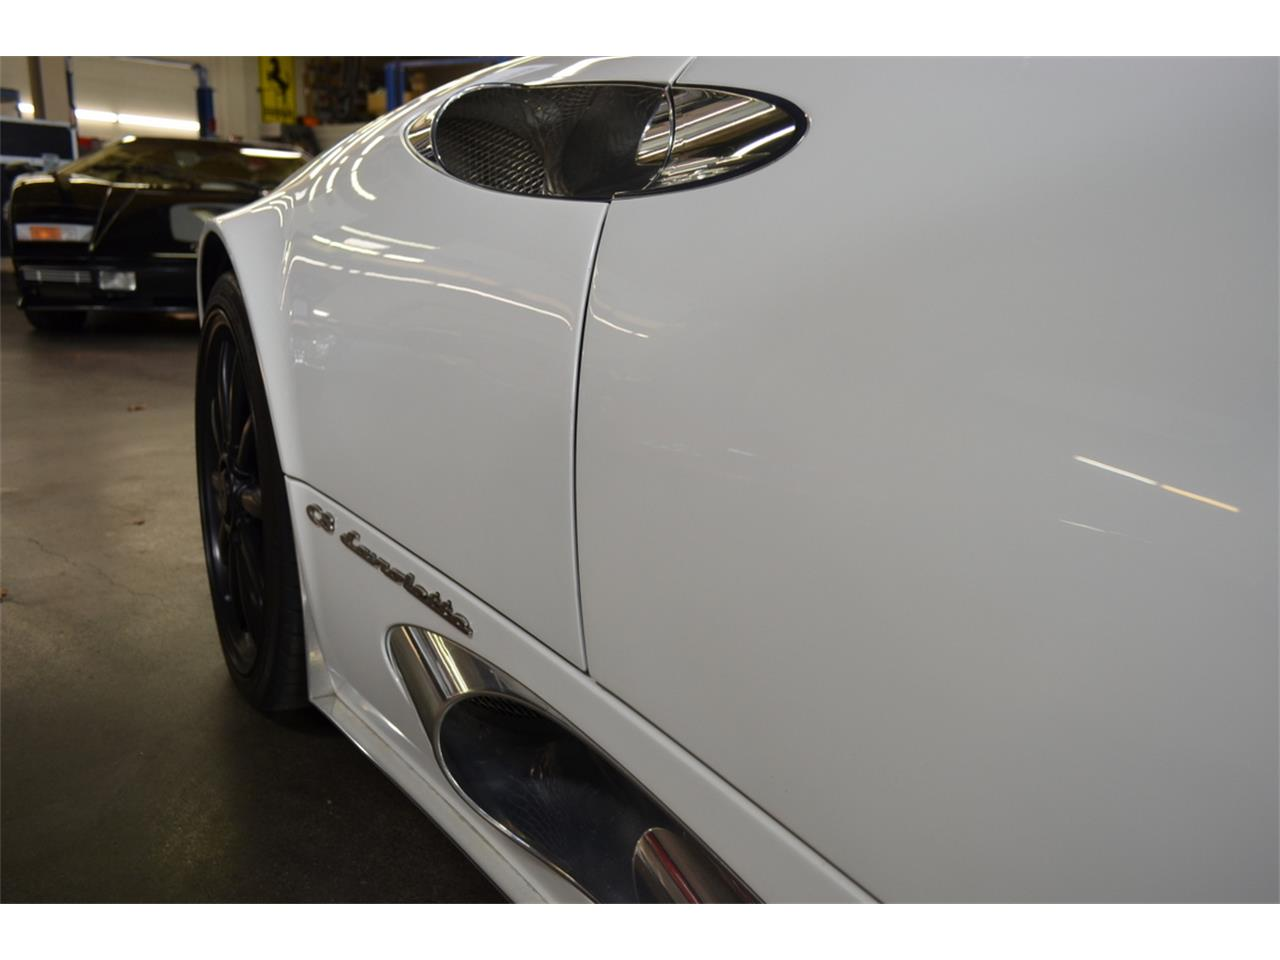 2010 Spyker C8 for sale in Huntington Station, NY – photo 18